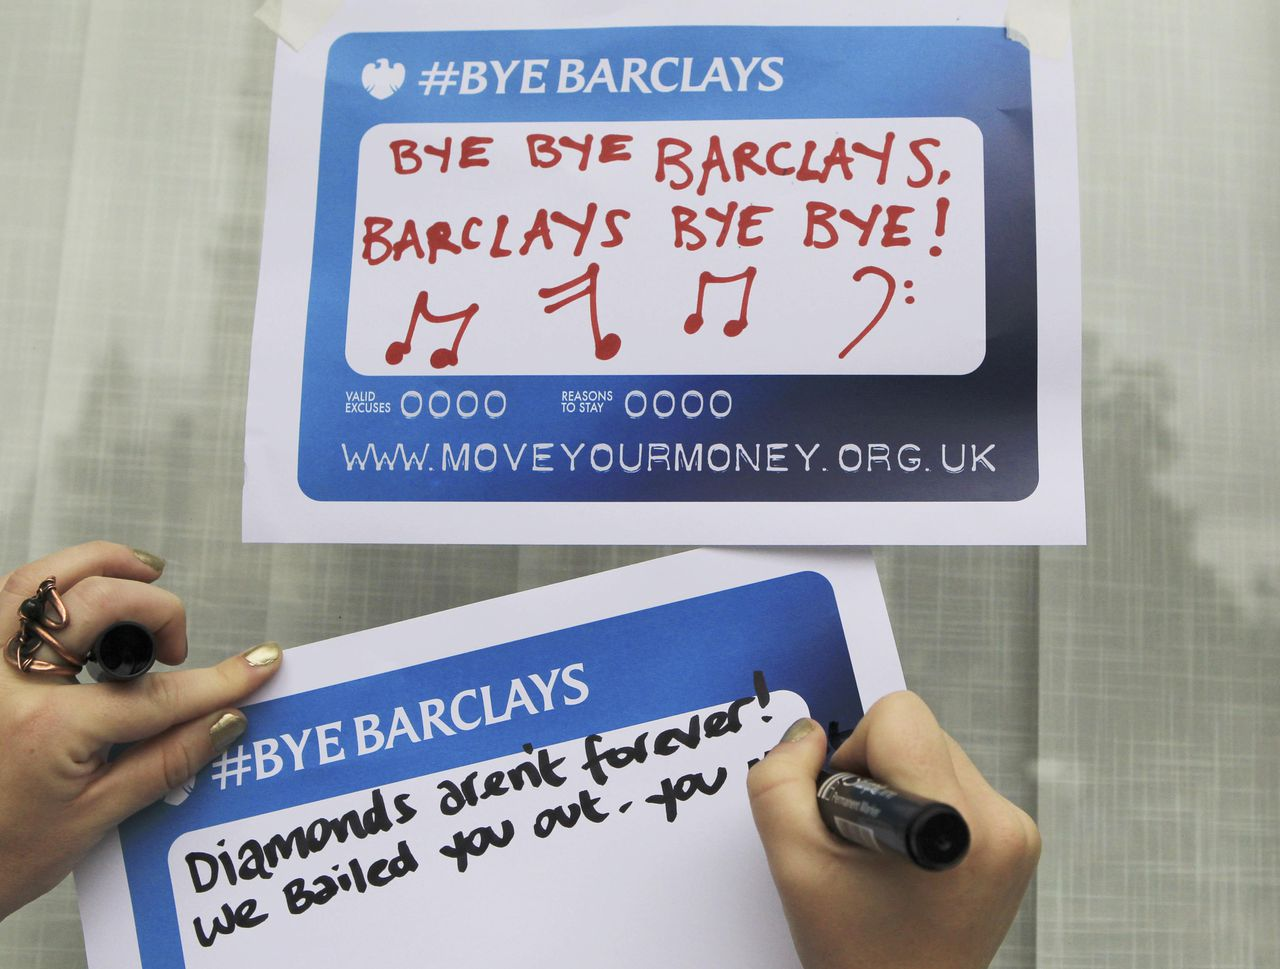 Protestors from the Move Your Money group stick up posters on a branch of Barclays Bank in Westminster central London, July 4, 2012. Barclays chief executive Bob Diamond, who quit this week over an interest rate-rigging scandal, will be questioned by British politicians on Wednesday, when he could drag the Bank of England, the government and rival banks deeper into the Libor interest rate affair. REUTERS/Olivia Harris (BRITAIN - Tags: BUSINESS POLITICS SOCIETY)